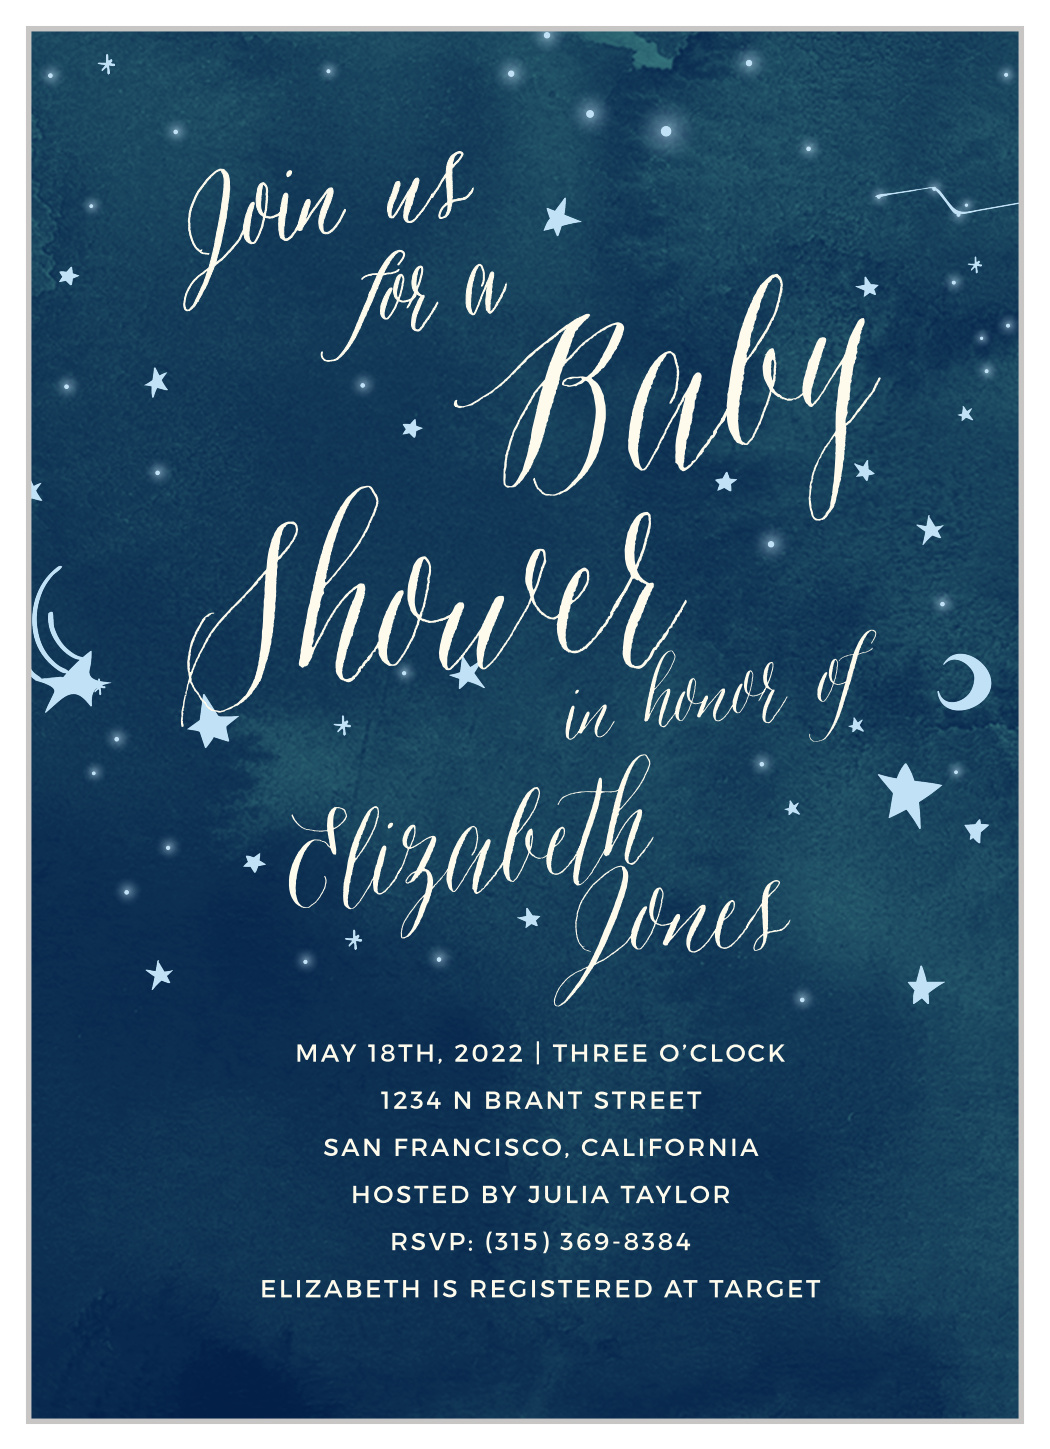 Twinkle Twinkle Little Star Baby Shower Invitation Wording : twinkle, little, shower, invitation, wording, Twinkle, Shower, Invitations, Basic, Invite